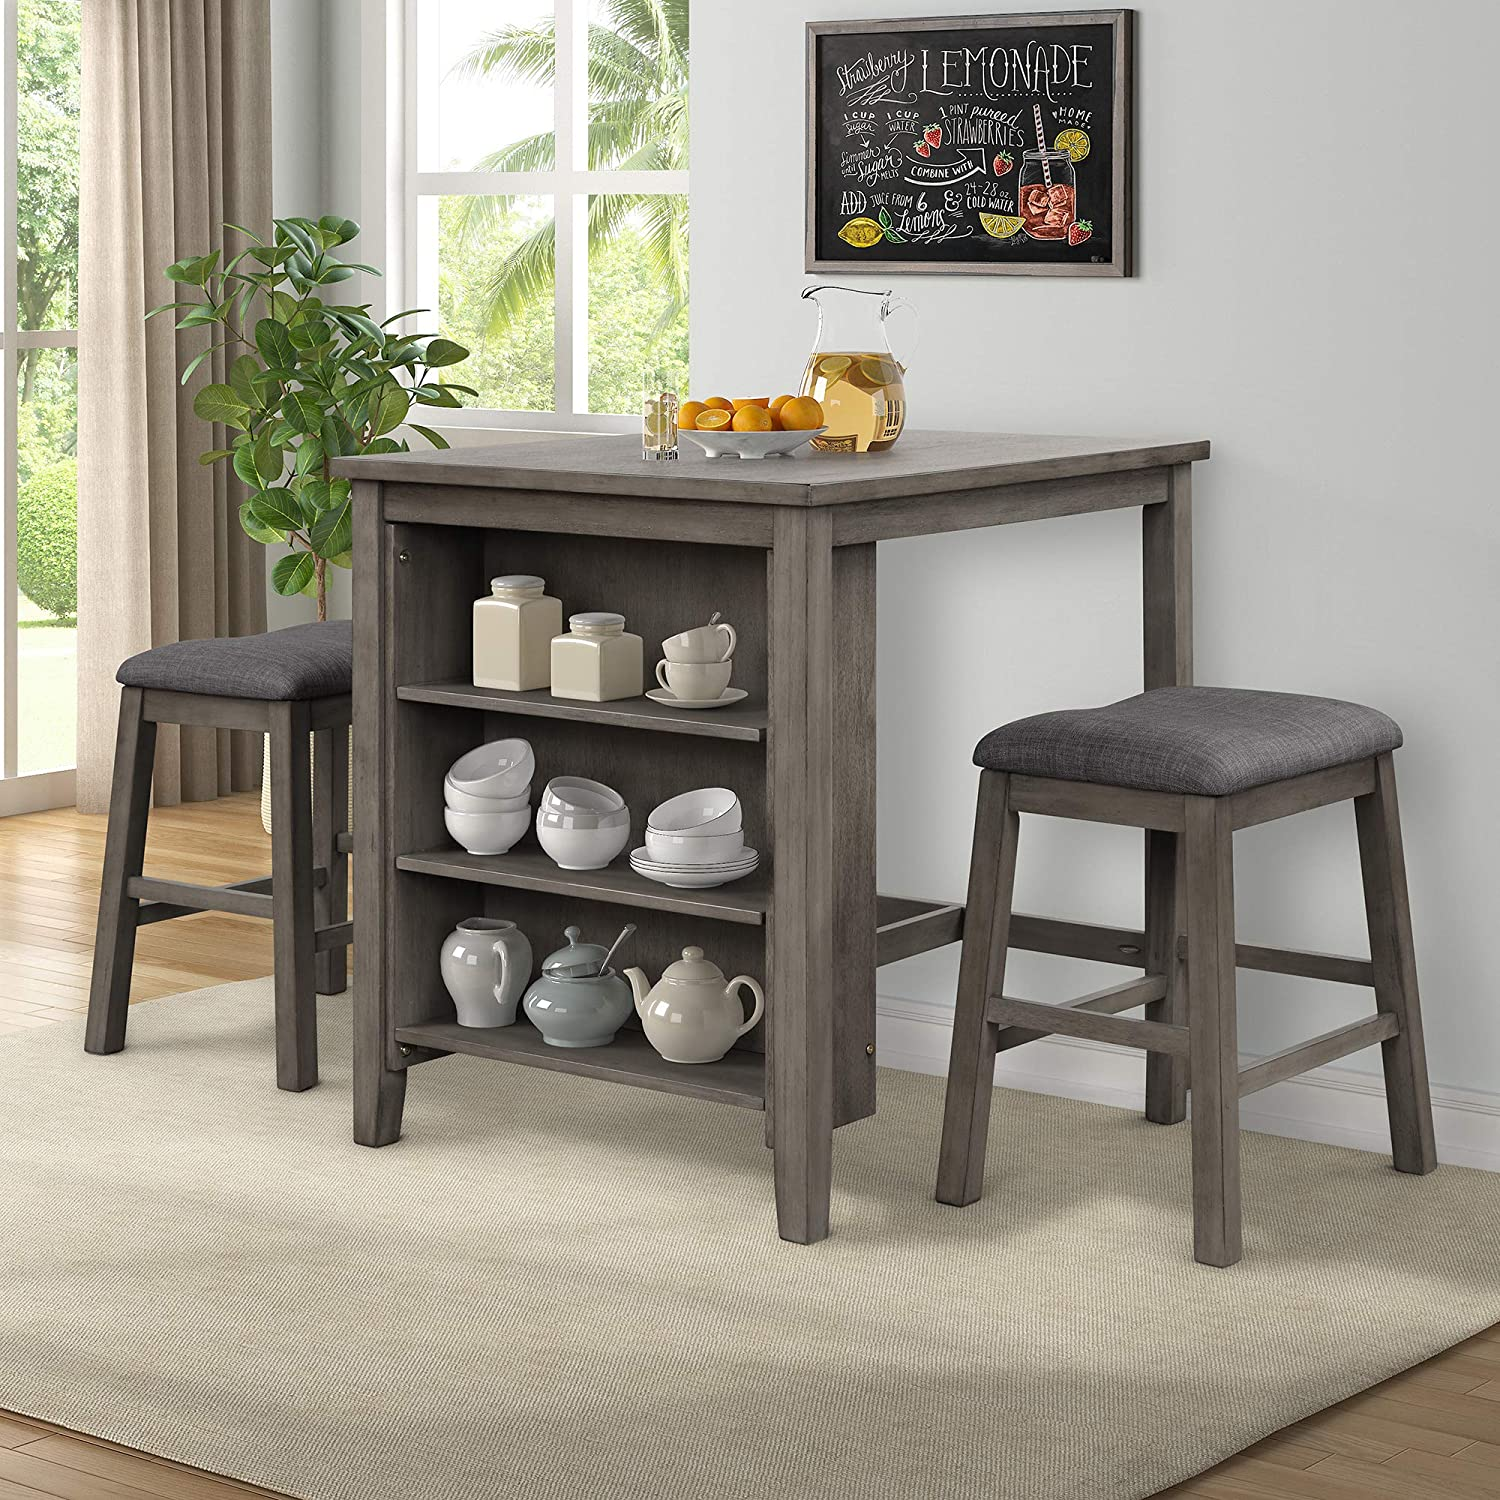 Bellemave 3 Piece Dining Table Set, Bar Height Kitchen Table And Chairs Set